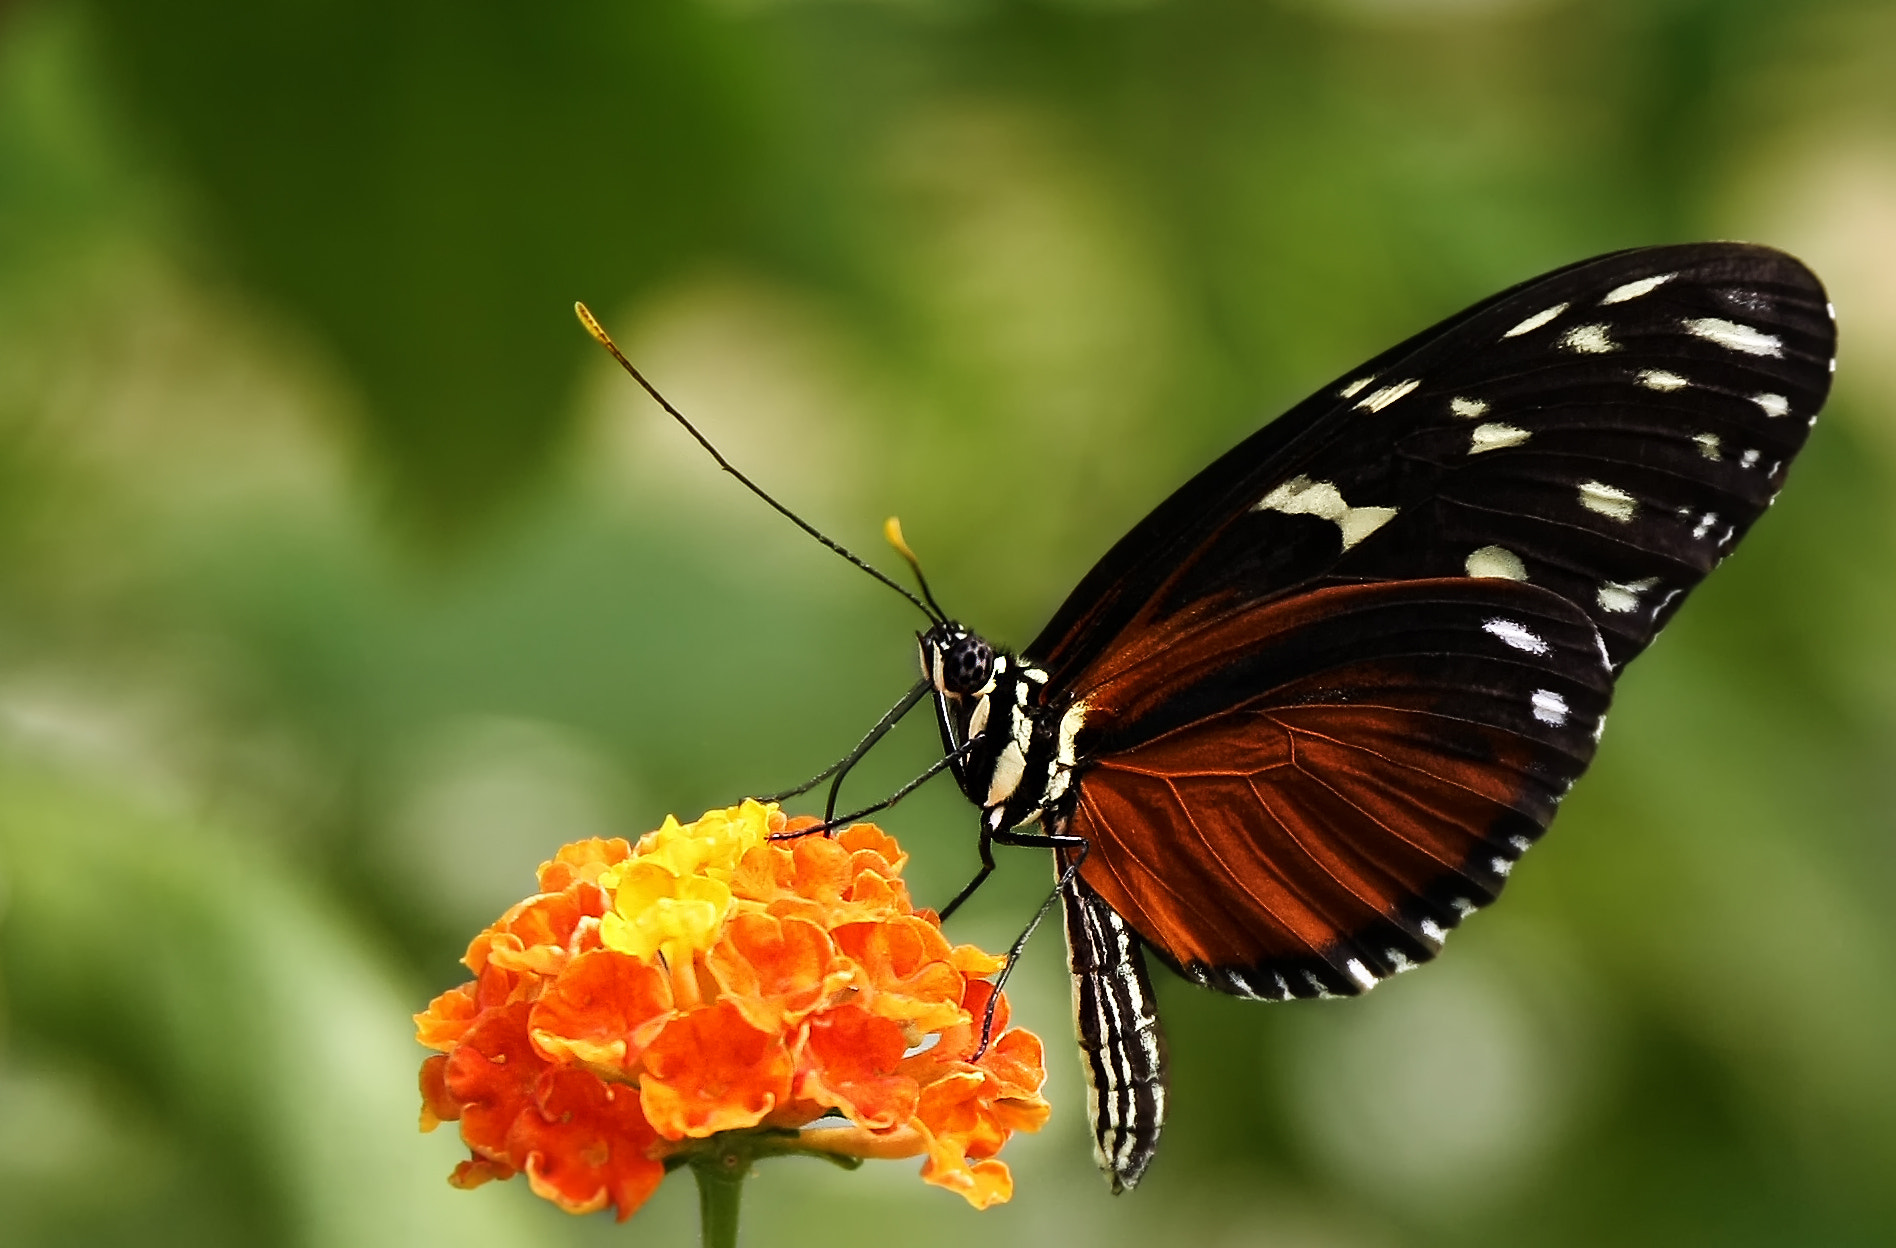 Photograph butterfly by jan kitel on 500px